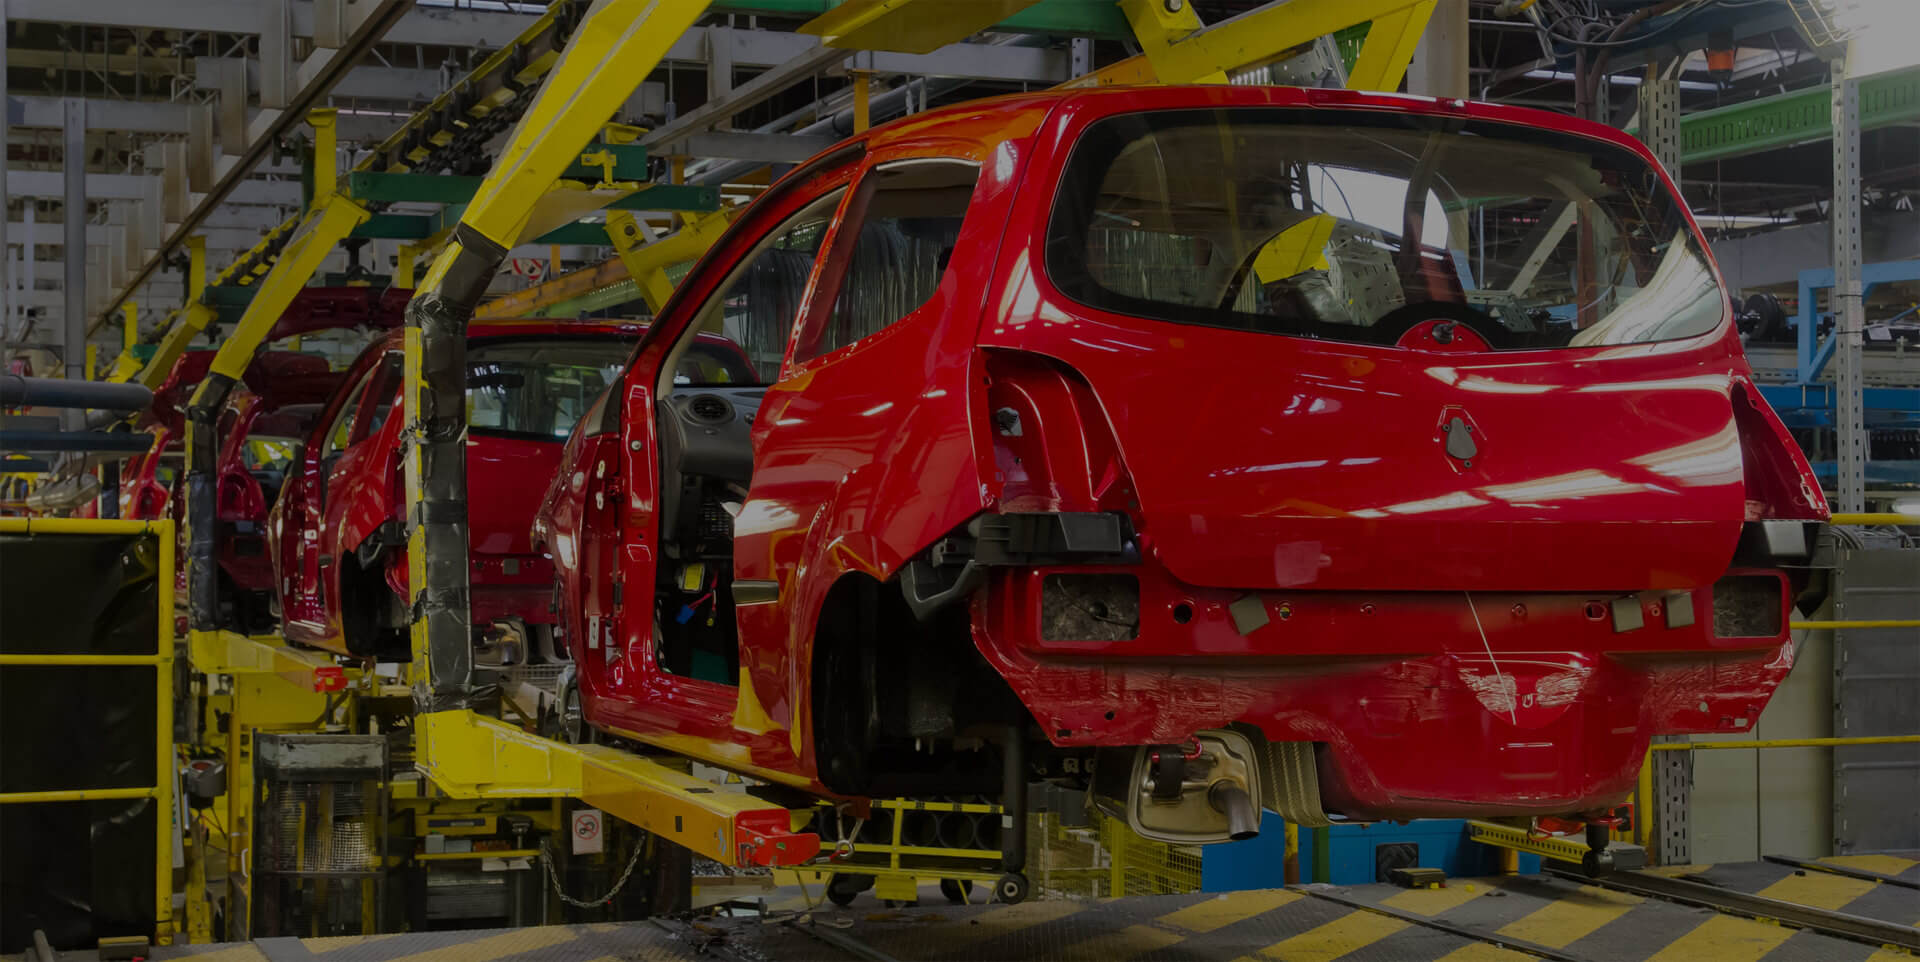 Automotive manufacturing plant that uses an environmental management system.